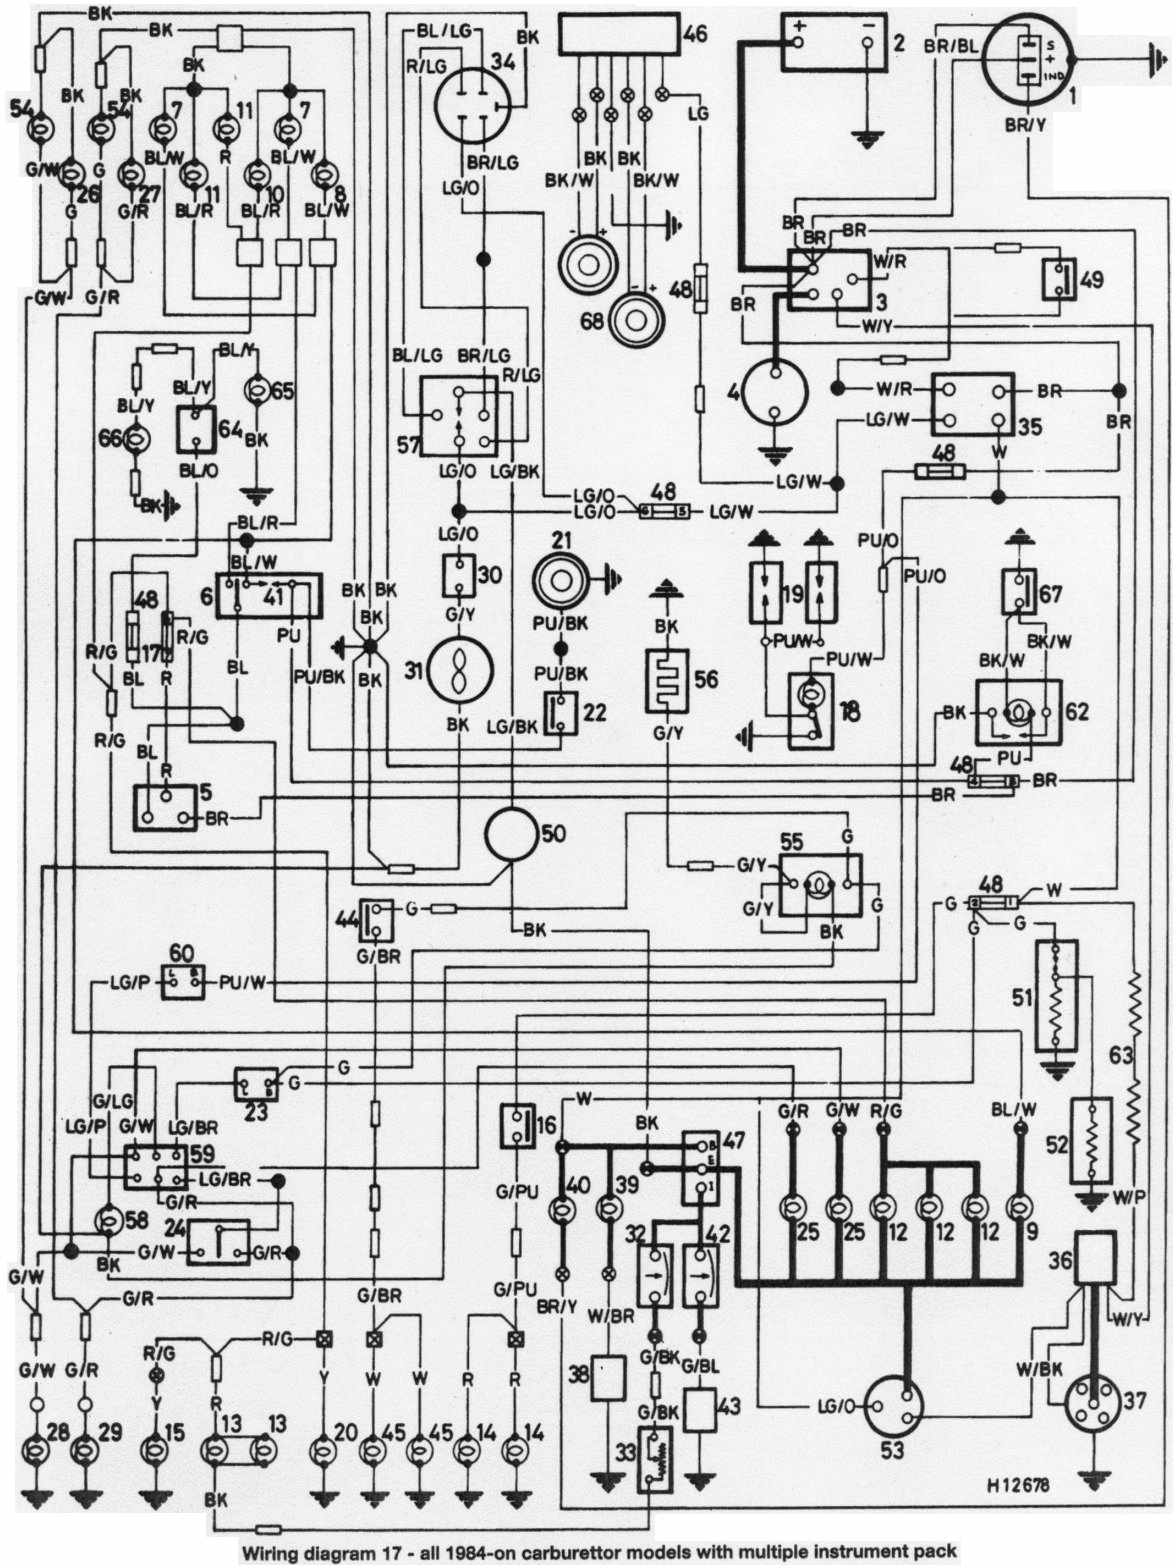 wiring diagram of 1984 onwards all mini series with multiple instrument pack?t\=1508499130 bmw mini wiring diagram gem e2 wiring diagrams \u2022 wiring diagrams 2004 mini cooper wiring diagram at n-0.co